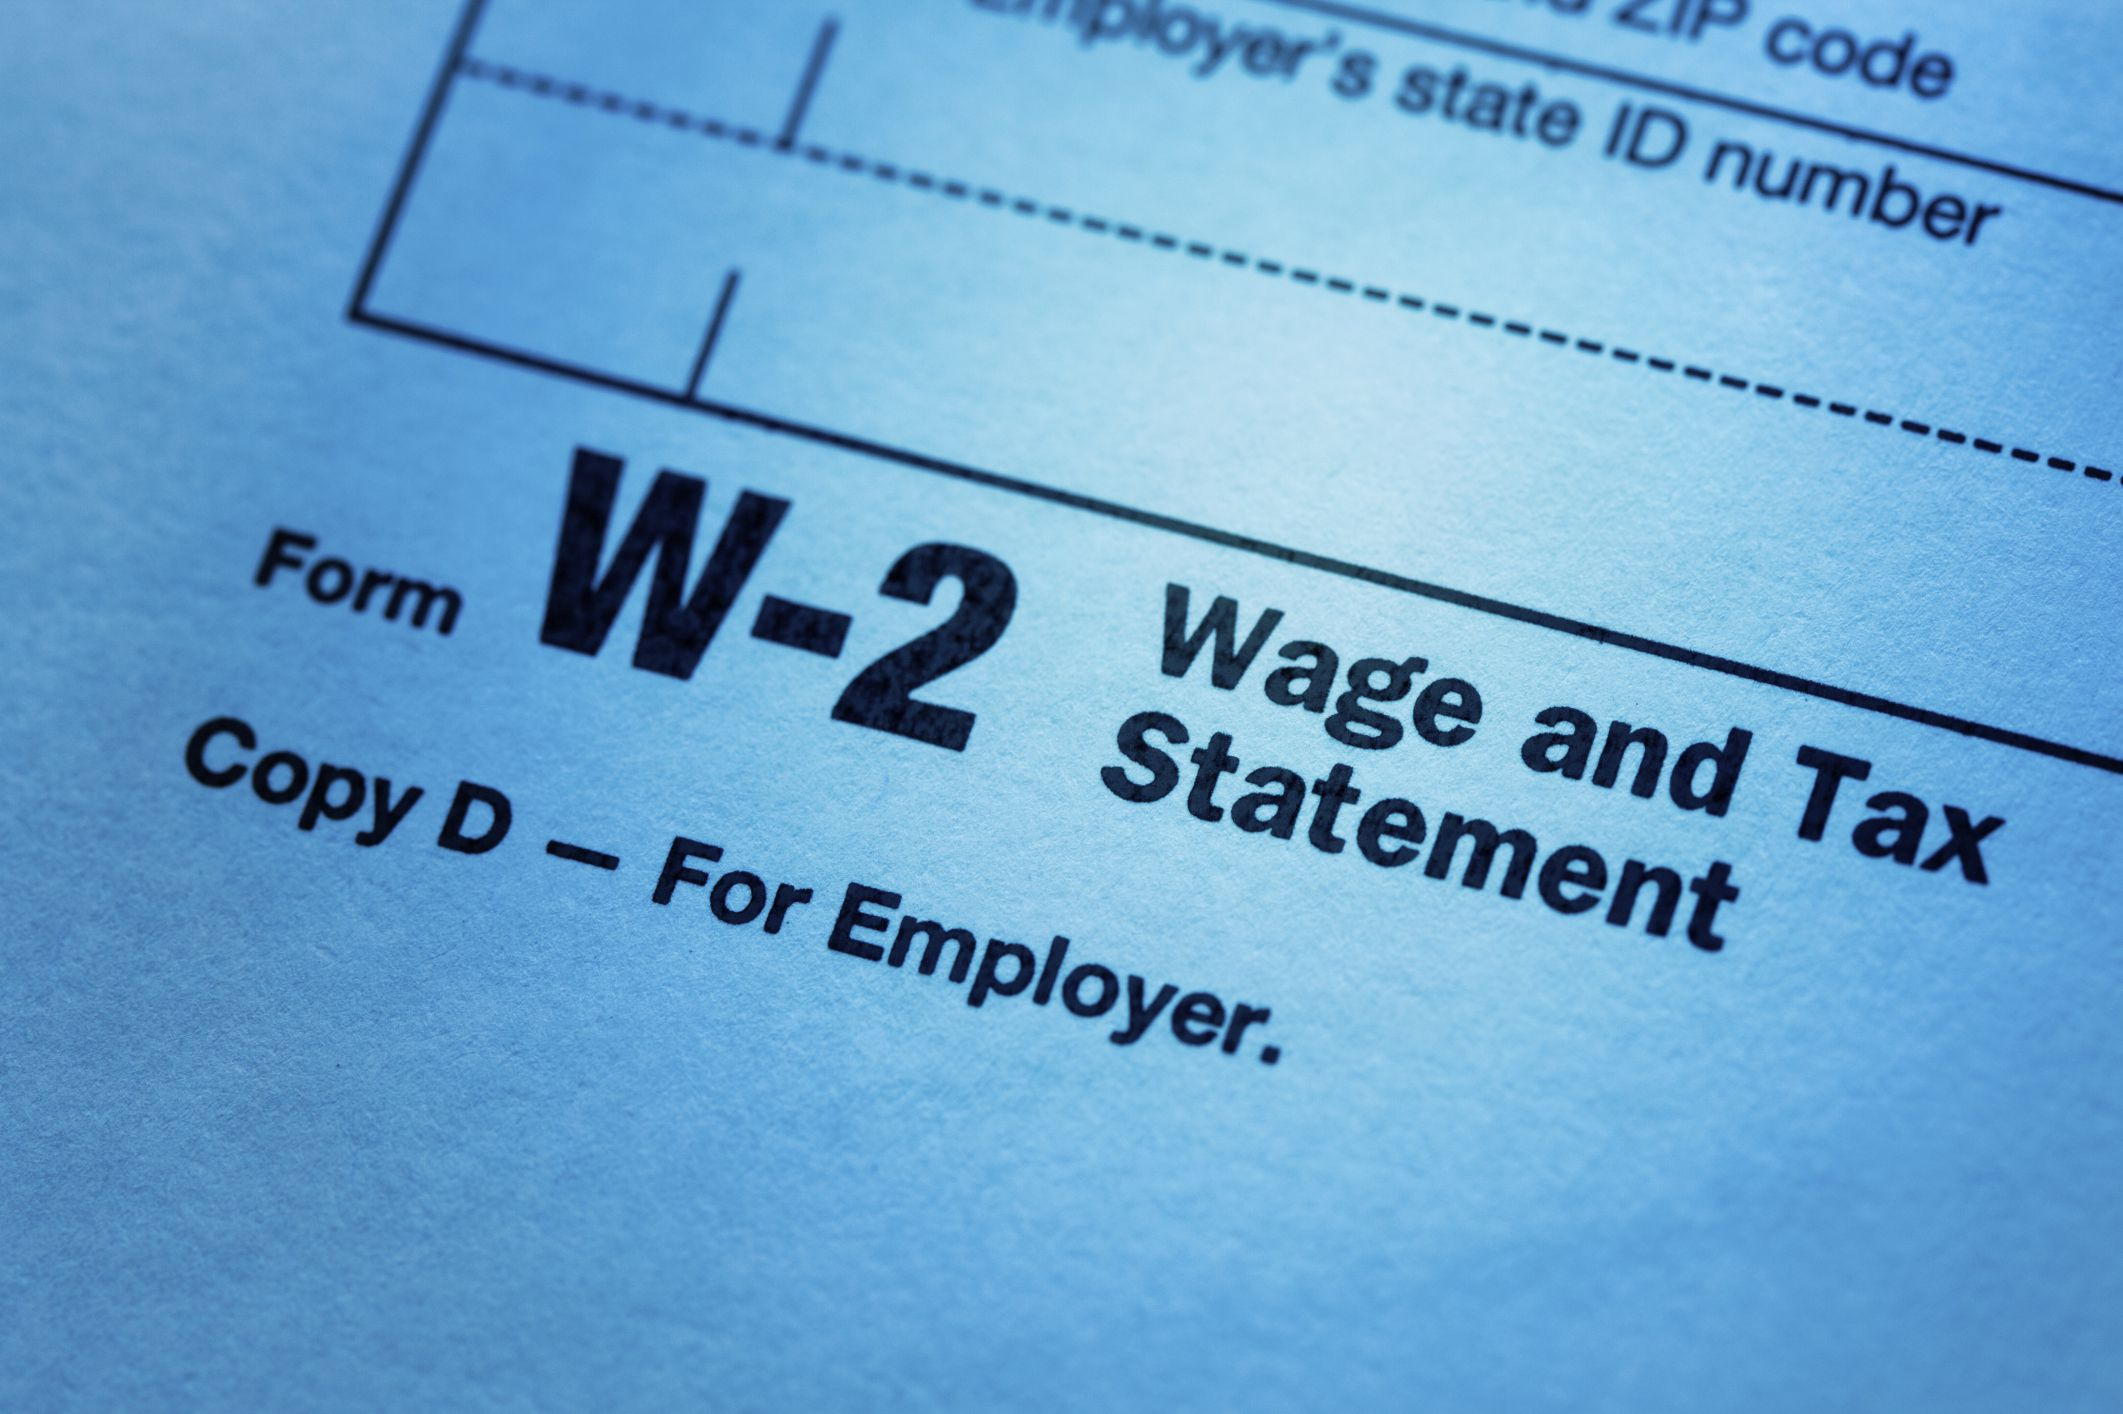 What Are Social Security Wages for FICA Tax?